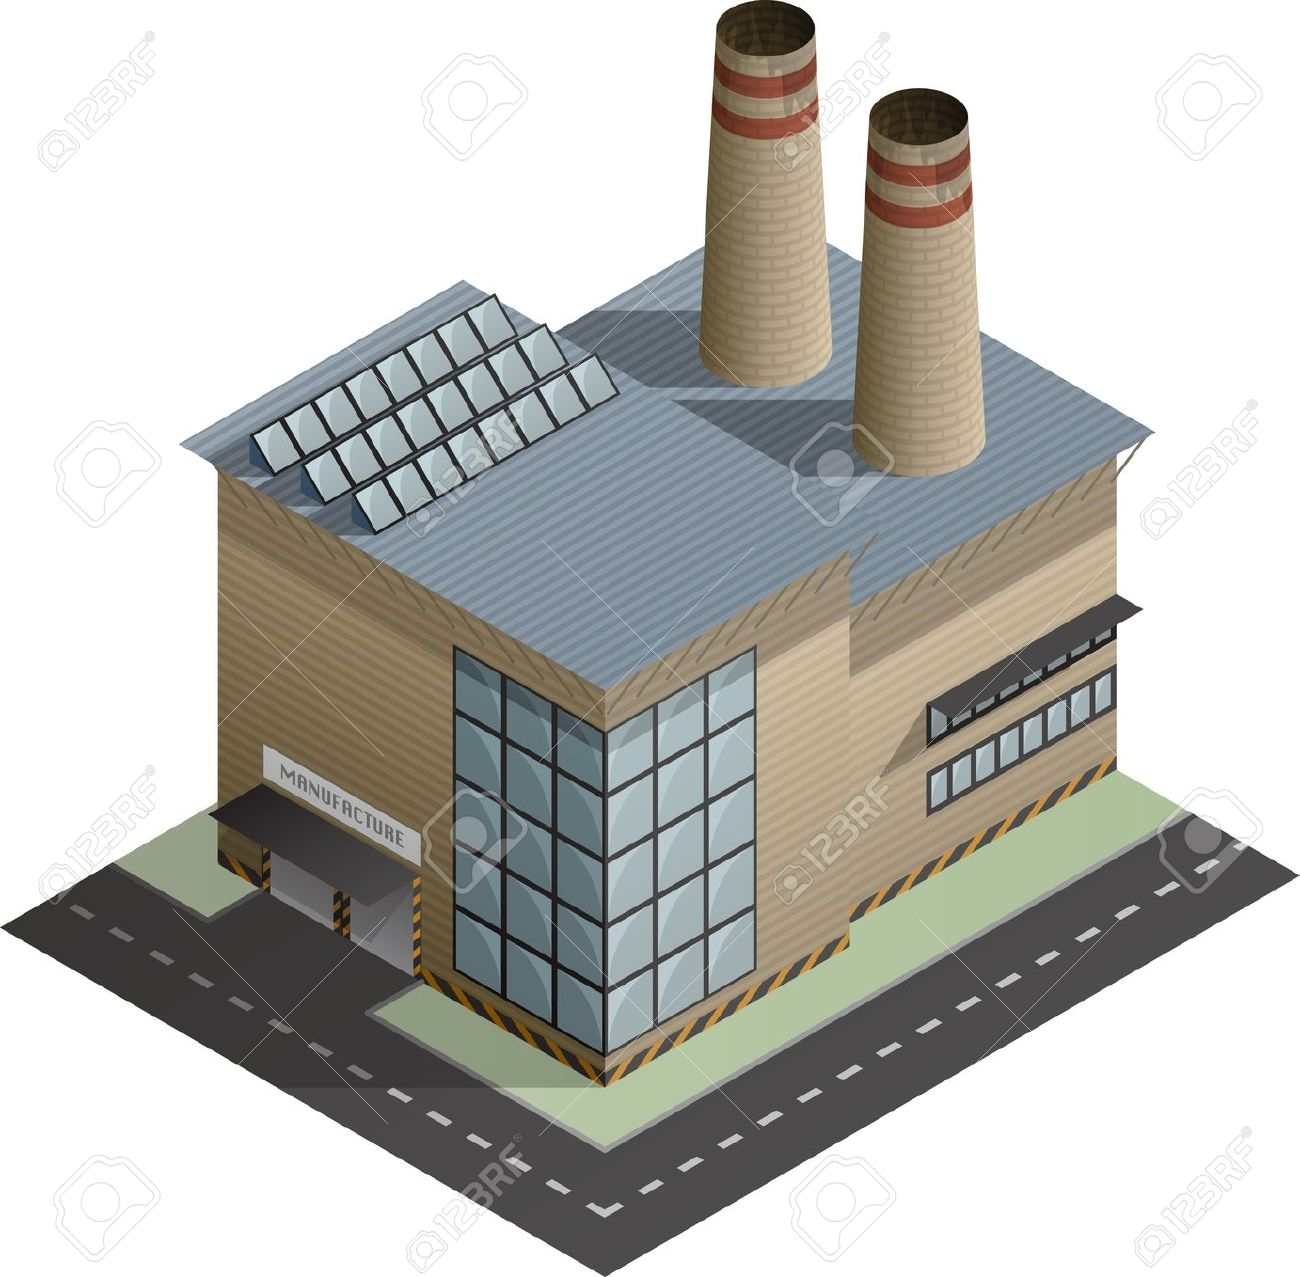 Factory Building Clipart Clip art of Factory Clipart #5634.